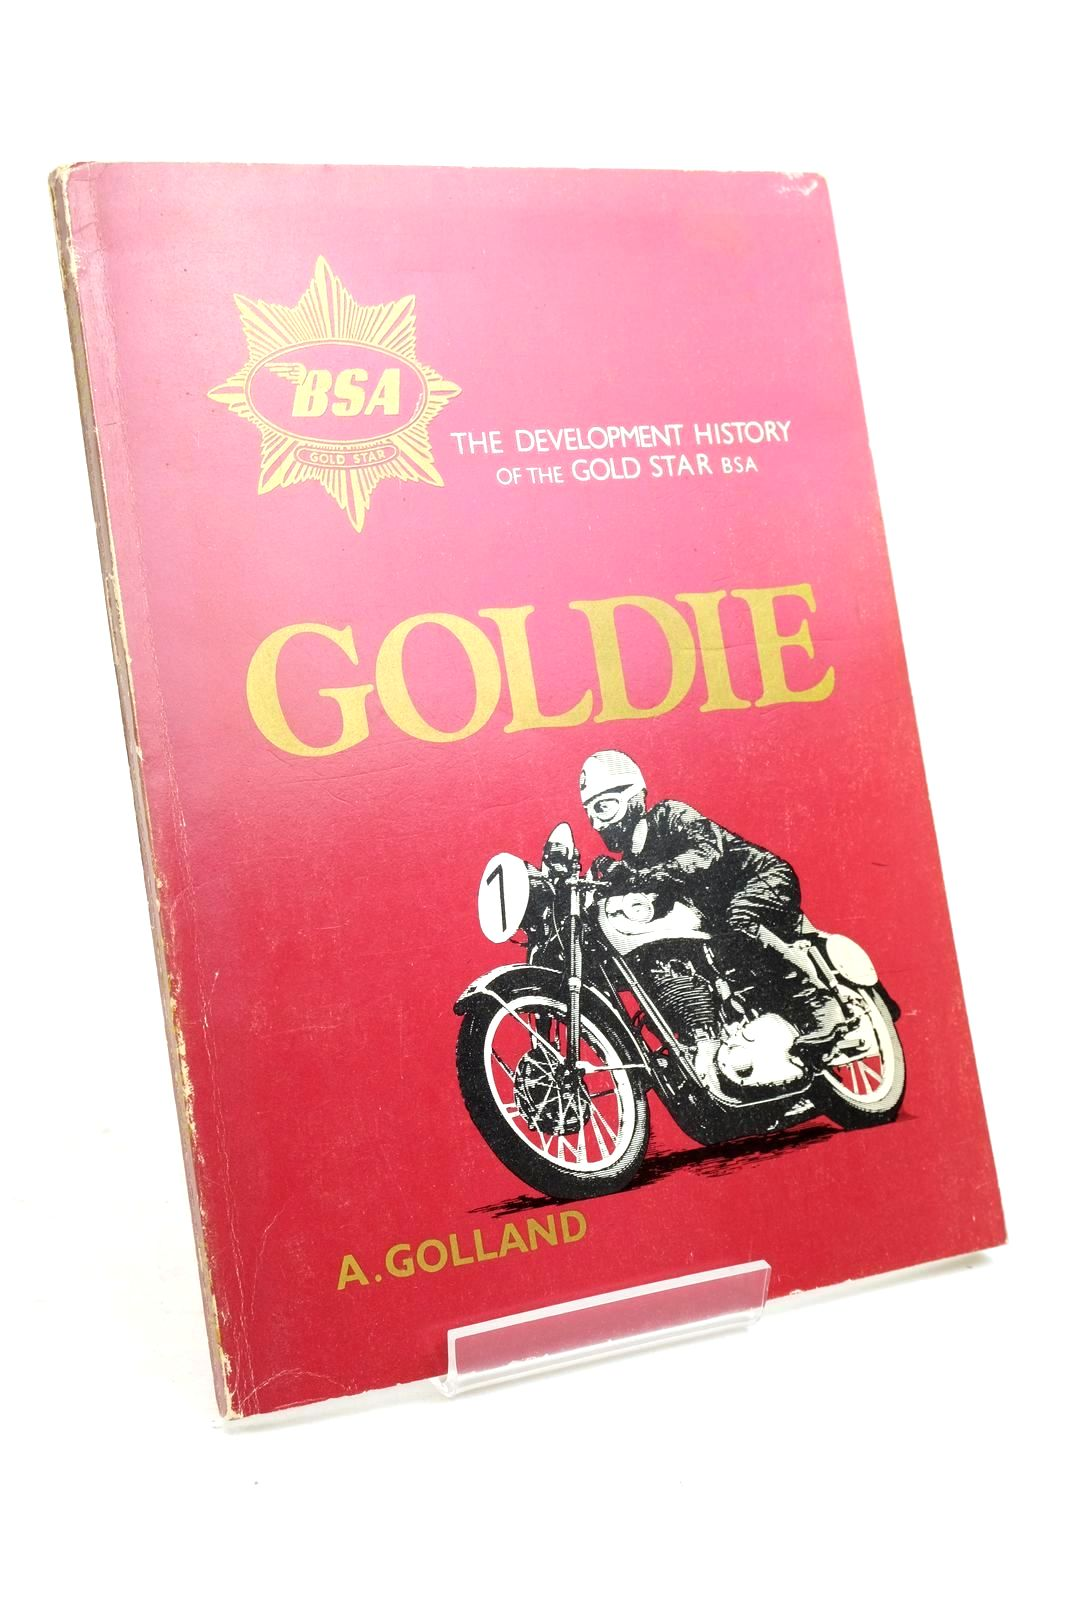 Photo of GOLDIE THE DEVELOPMENT HISTORY OF THE GOLD STAR BSA written by Golland, A. published by Haynes Publishing Group (STOCK CODE: 1321237)  for sale by Stella & Rose's Books